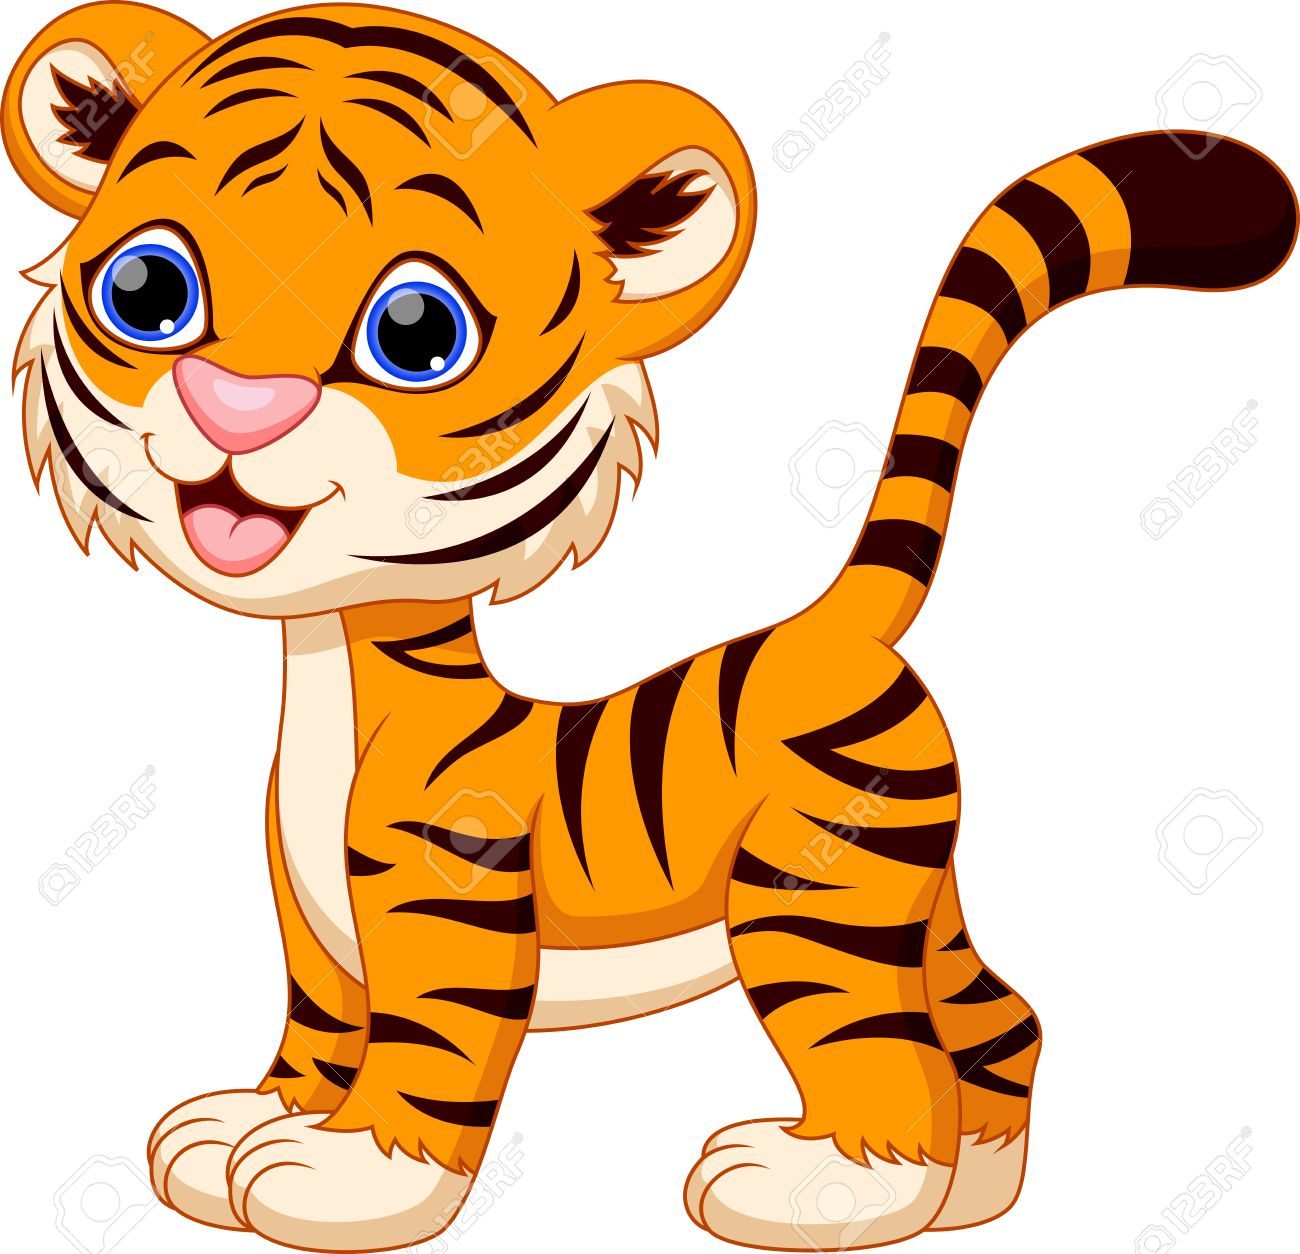 cute female tiger cartoon royalty free cliparts vectors and stock rh 123rf com cute tiger cub clipart tiger cub face clipart